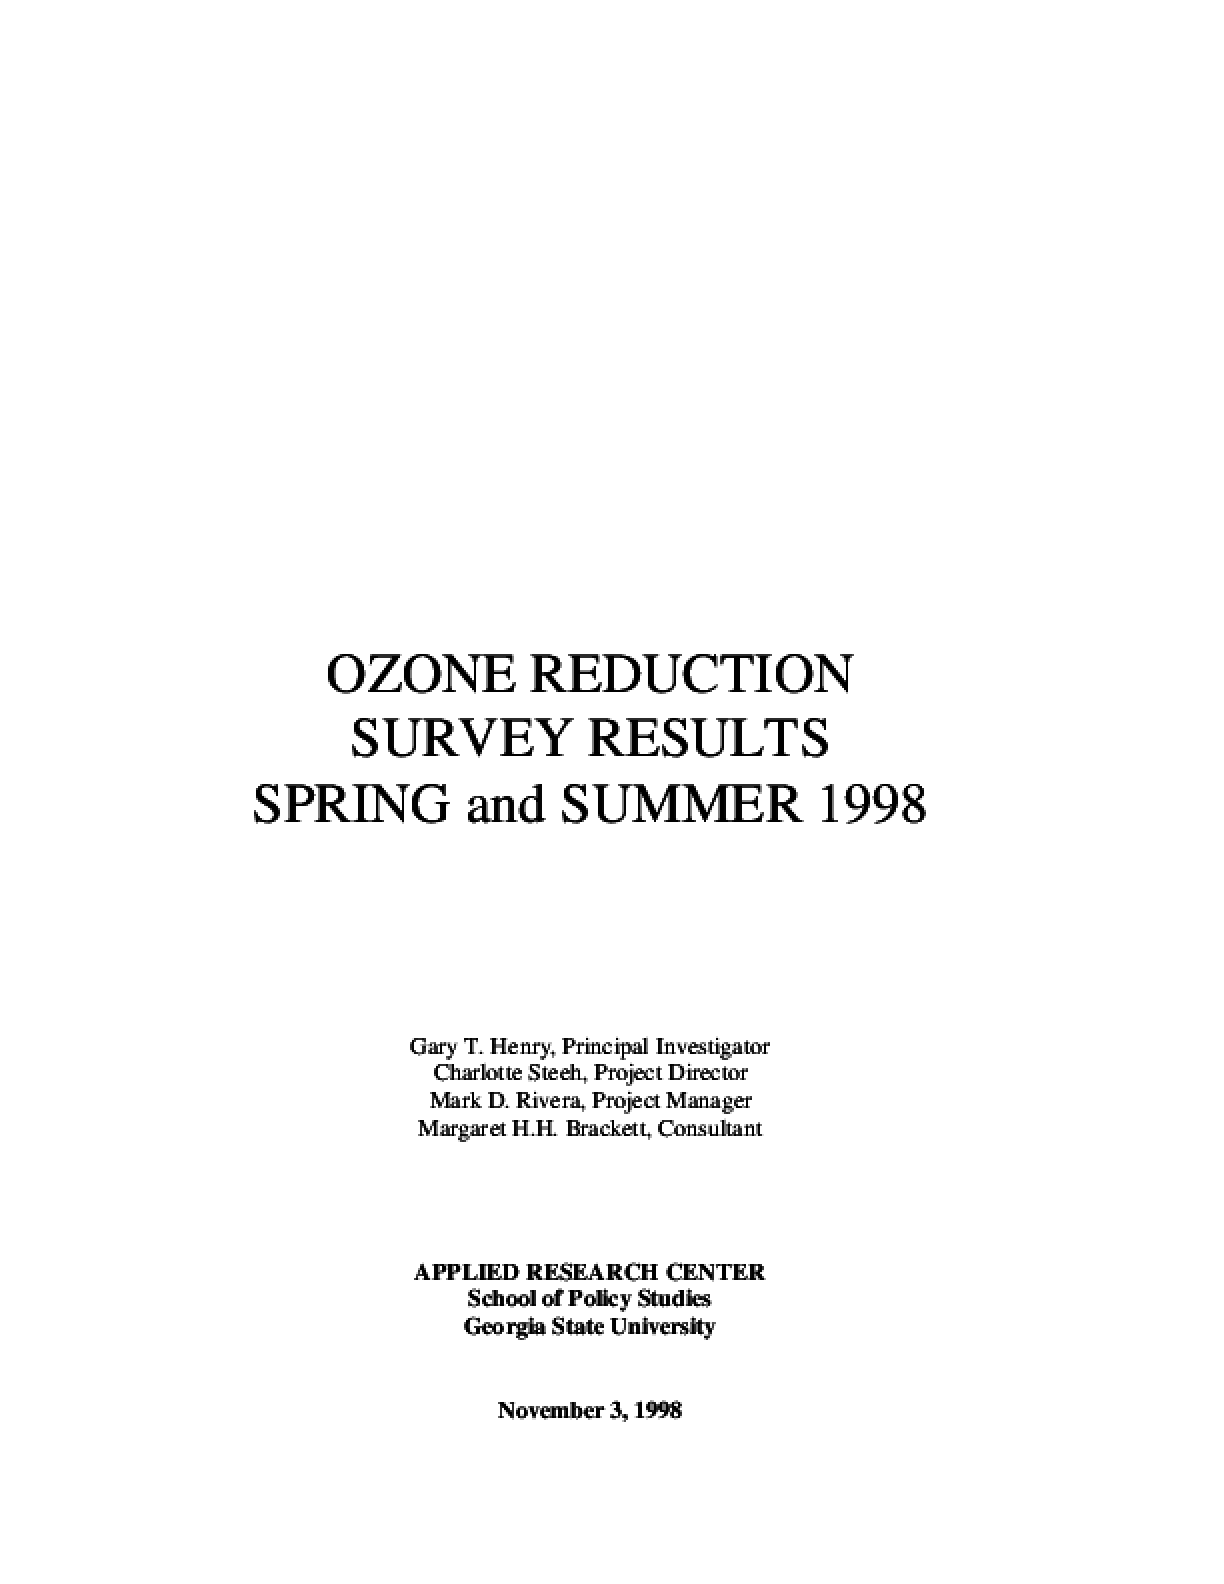 Ozone Reduction Survey Results: The Spring & Summer 98 Report